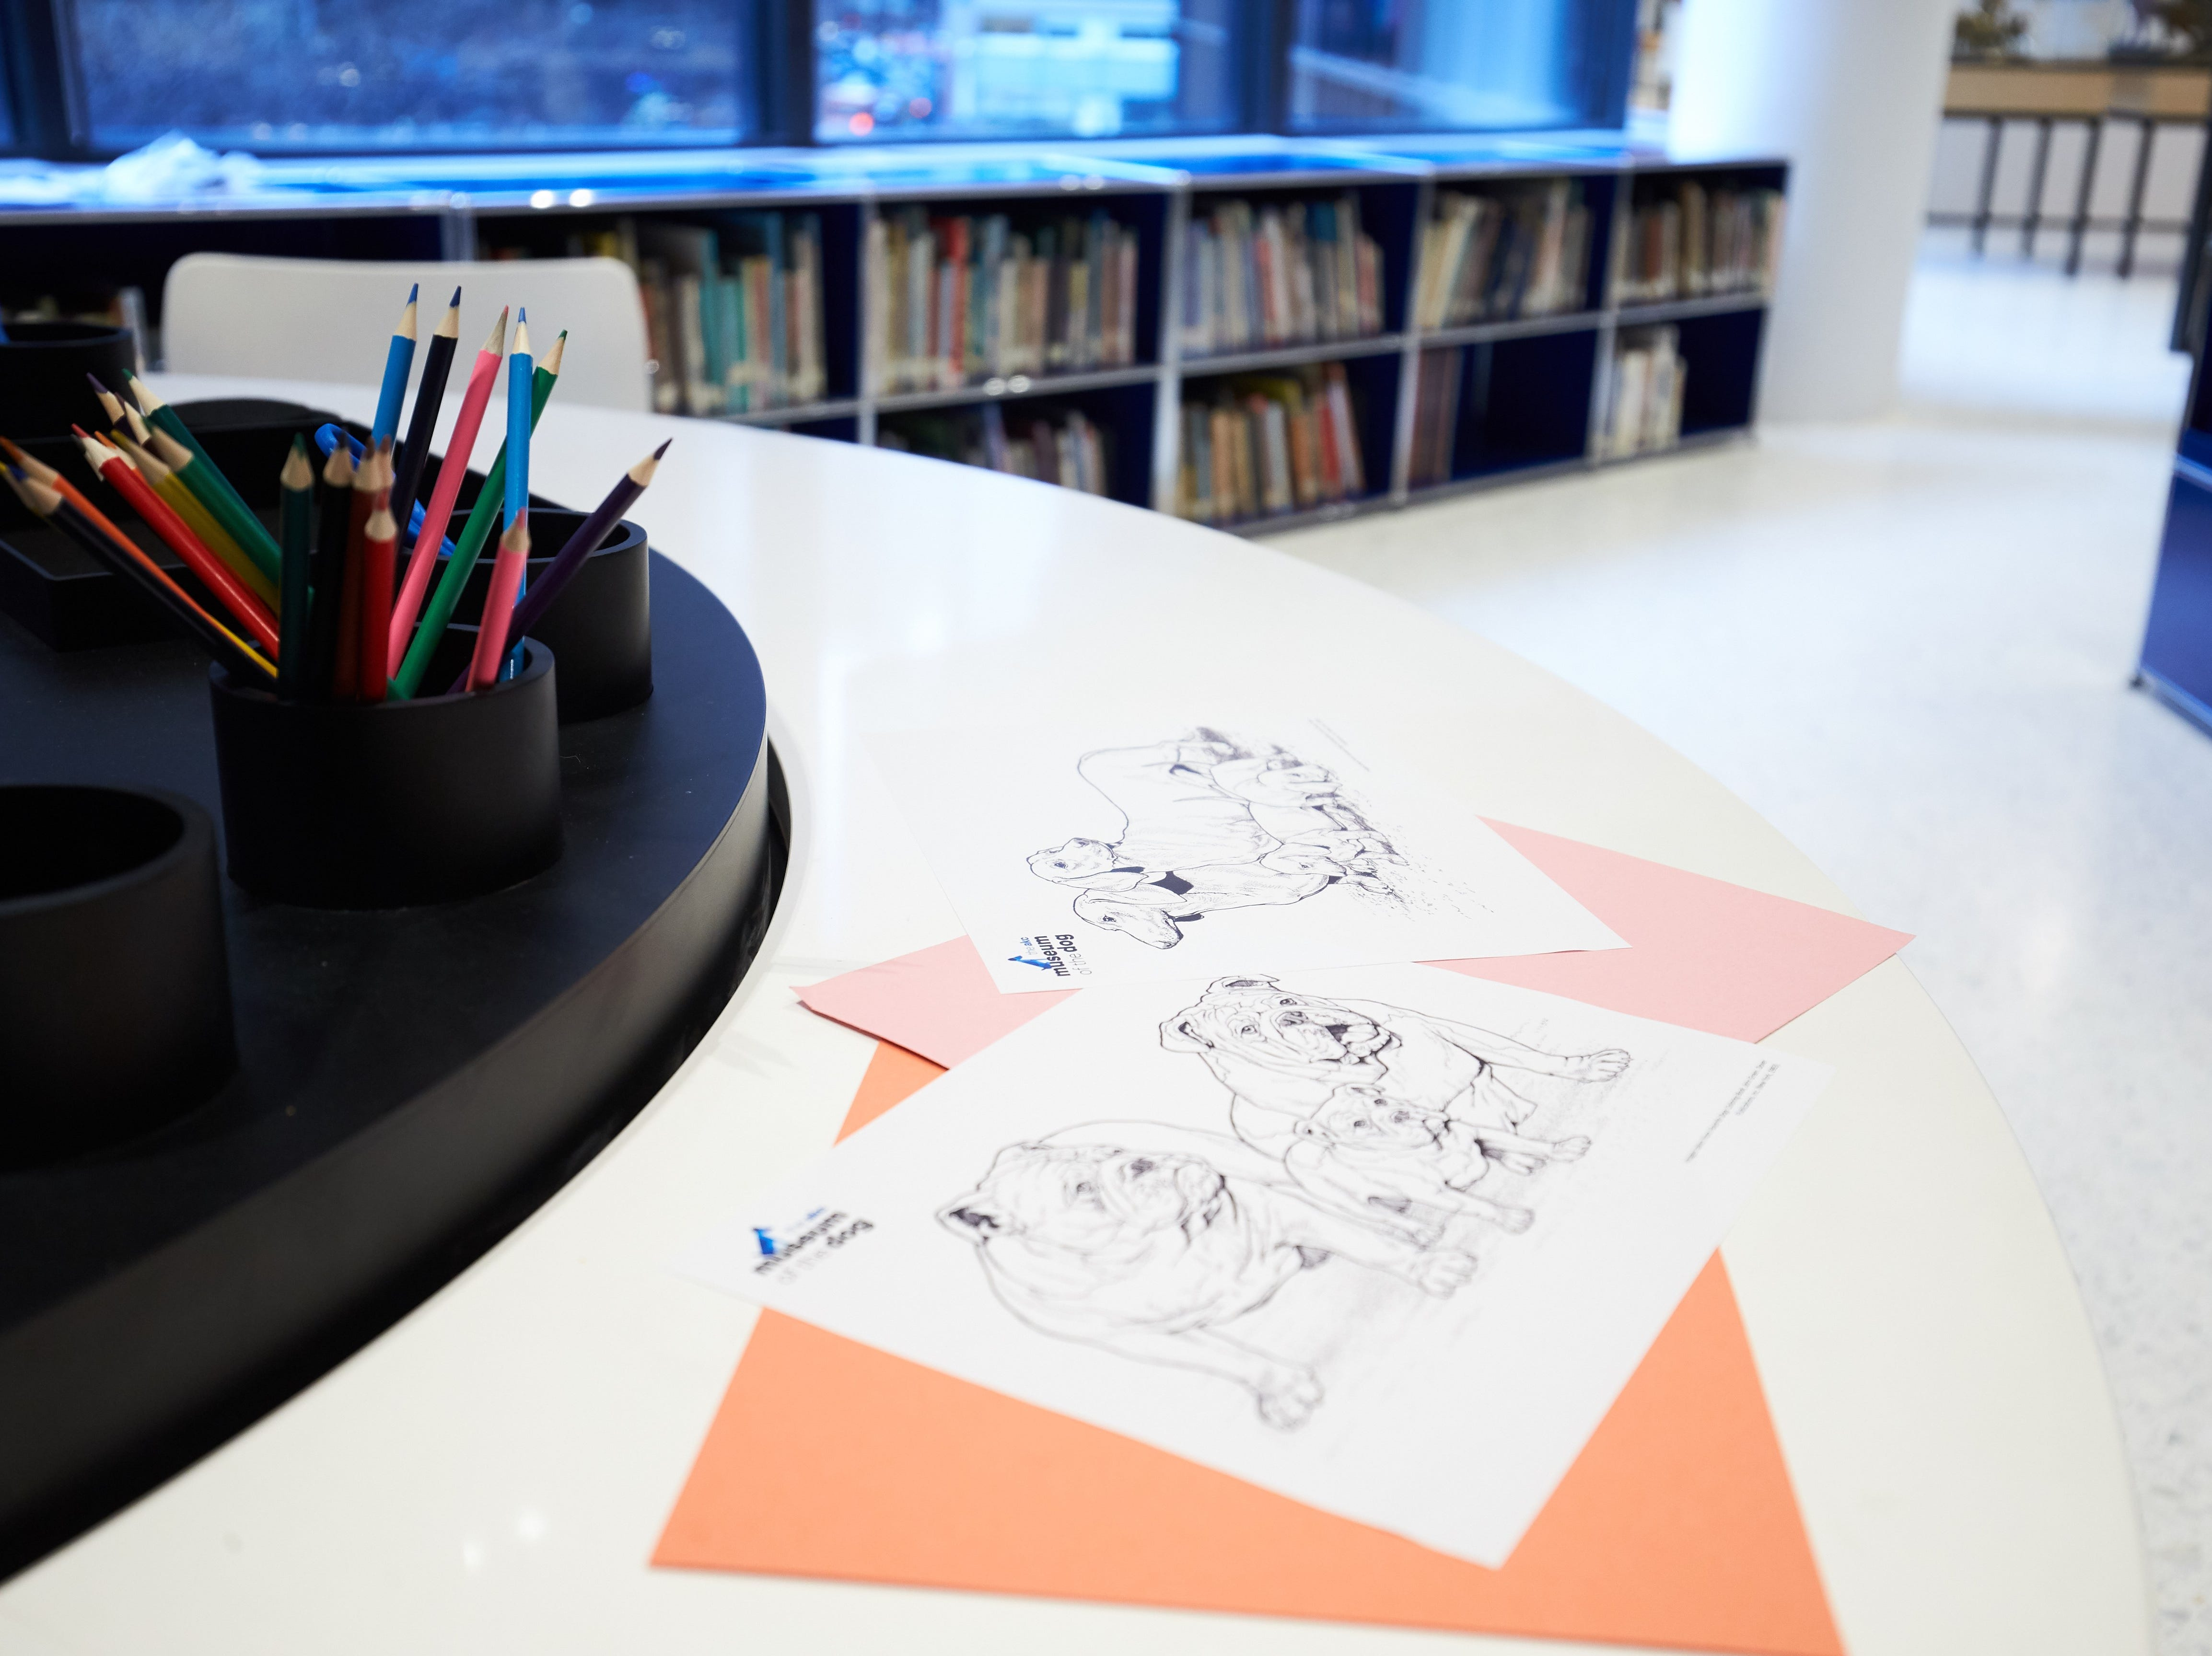 The children's activity table at the Museum of the Dog.